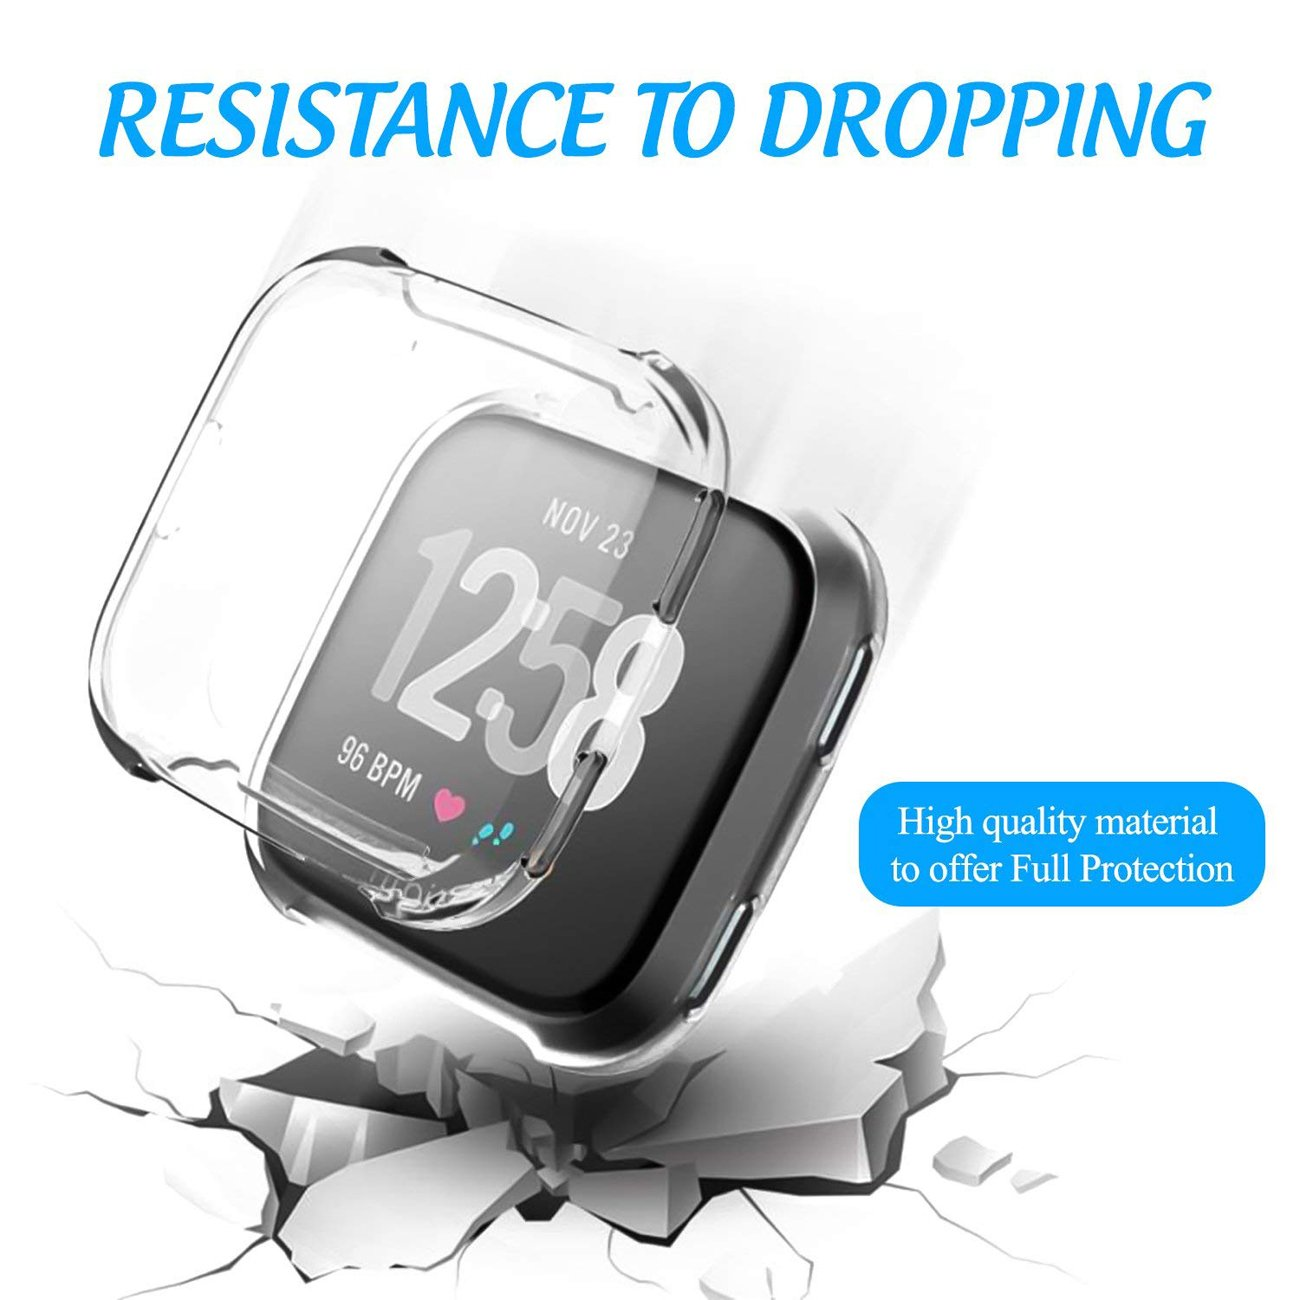 GerTong Soft Silicone TPU Full Cover Case For Fitbit Versa Ultra-thin Soft Plating TPU Protection For Fitbit Versa Protective Shell Frame for Fitbit Versa Smartwatch Clear by GerTong (Image #4)